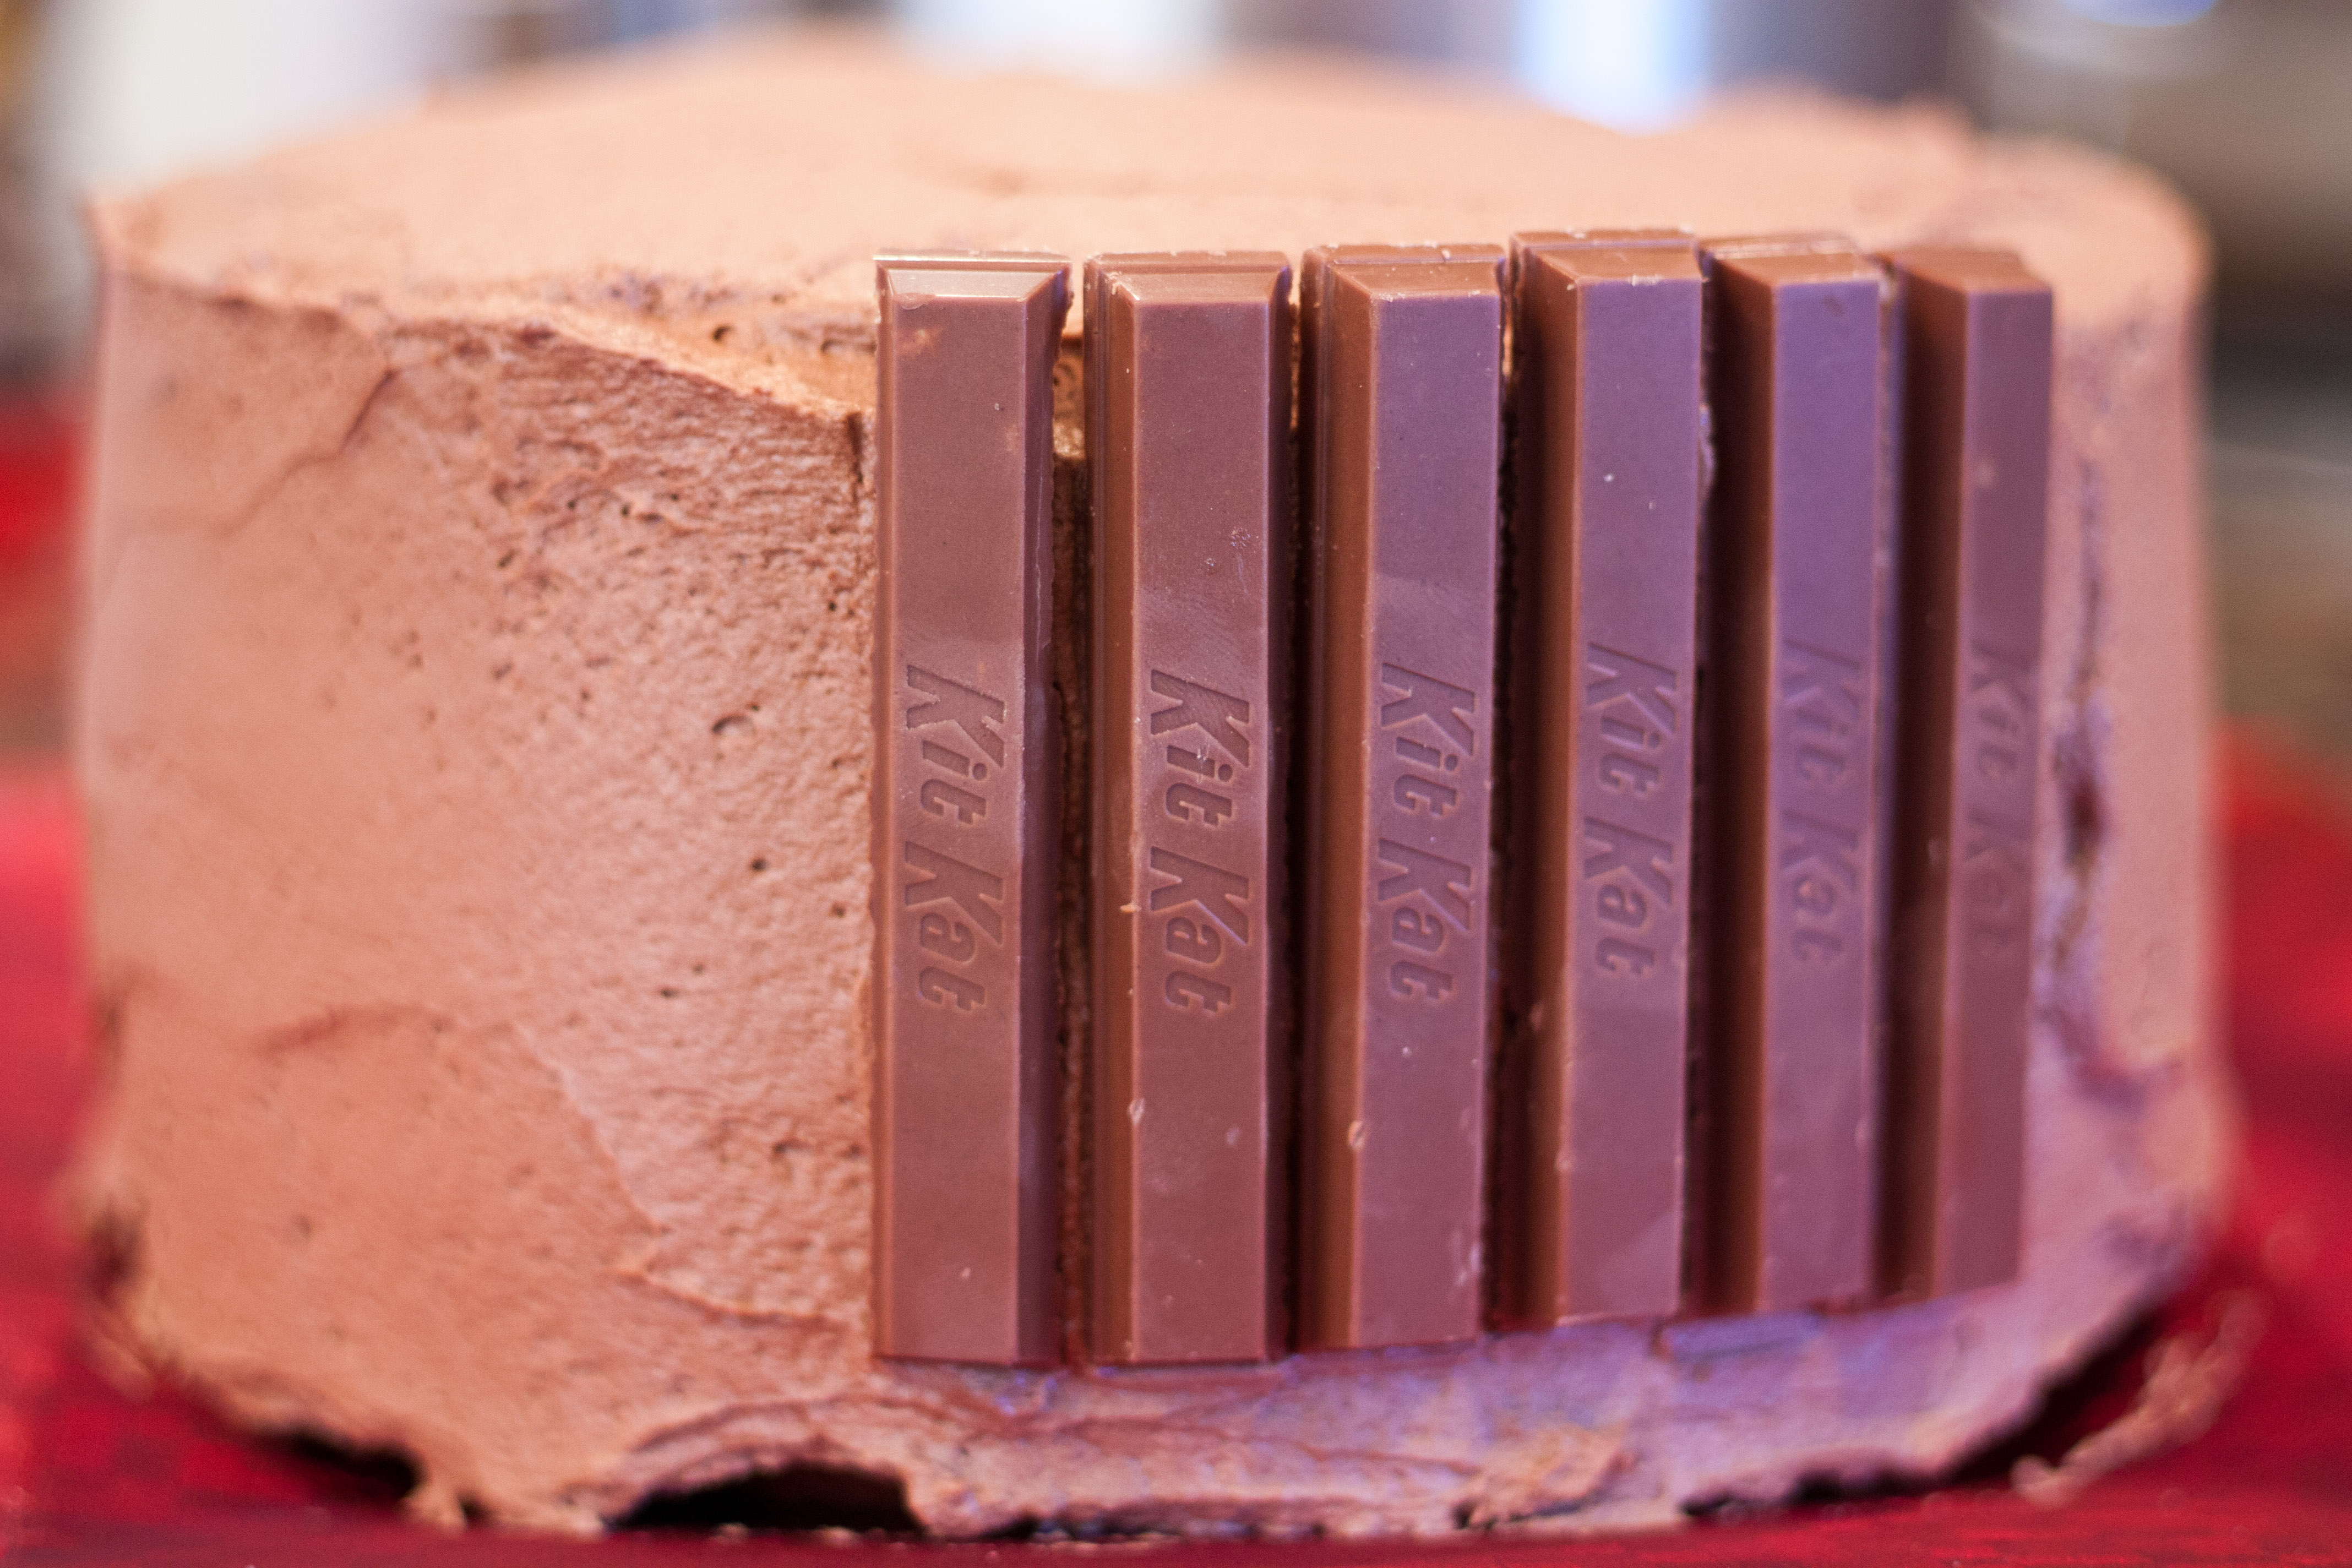 Working quickly, place kit kat bars side by side all around the edge ...